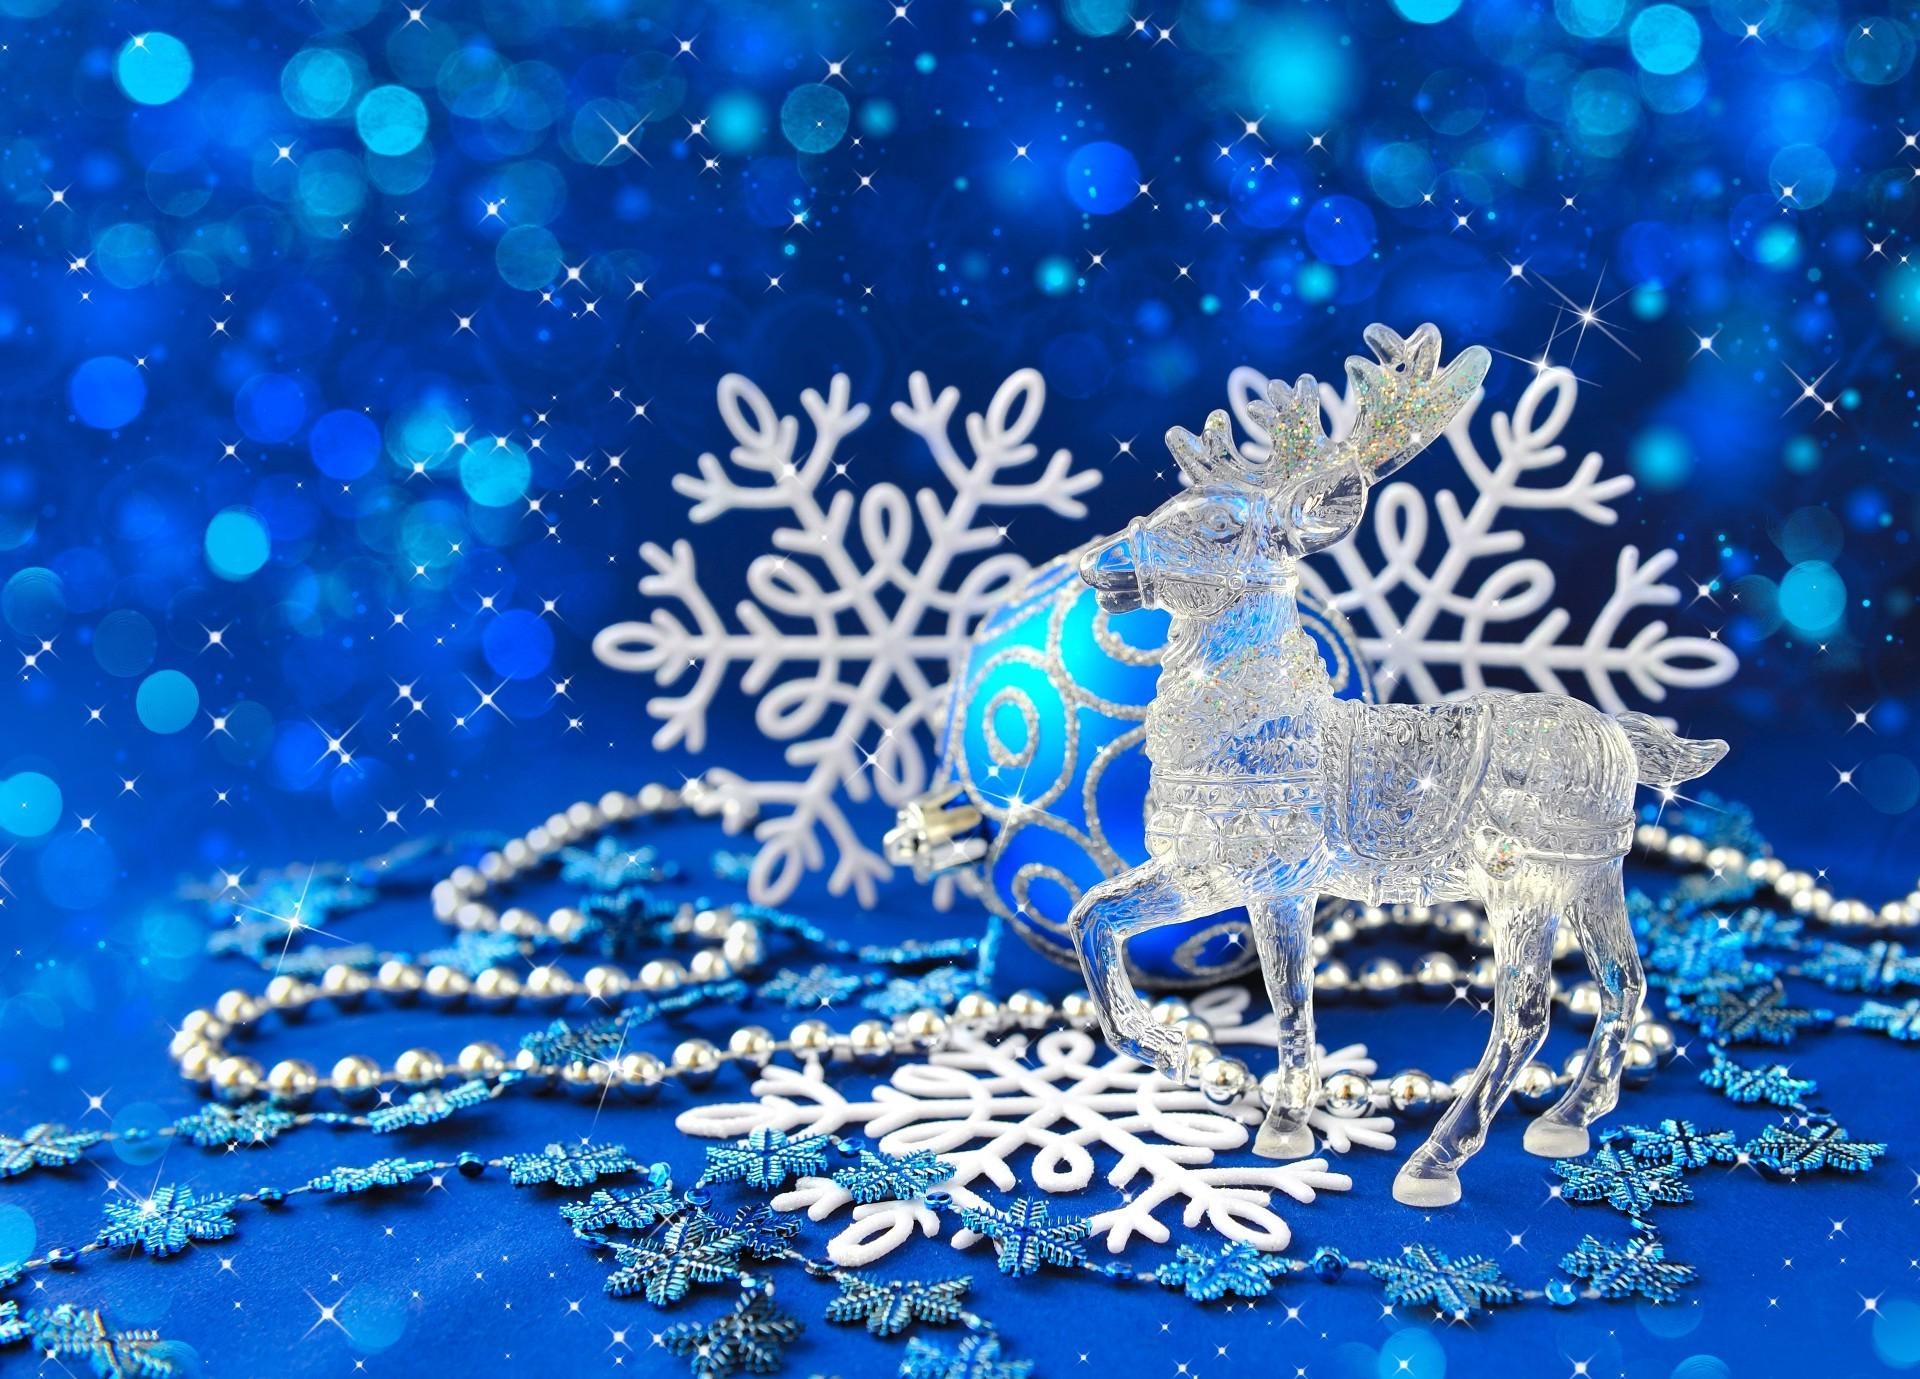 Crystal reindeer on blue Christmas background